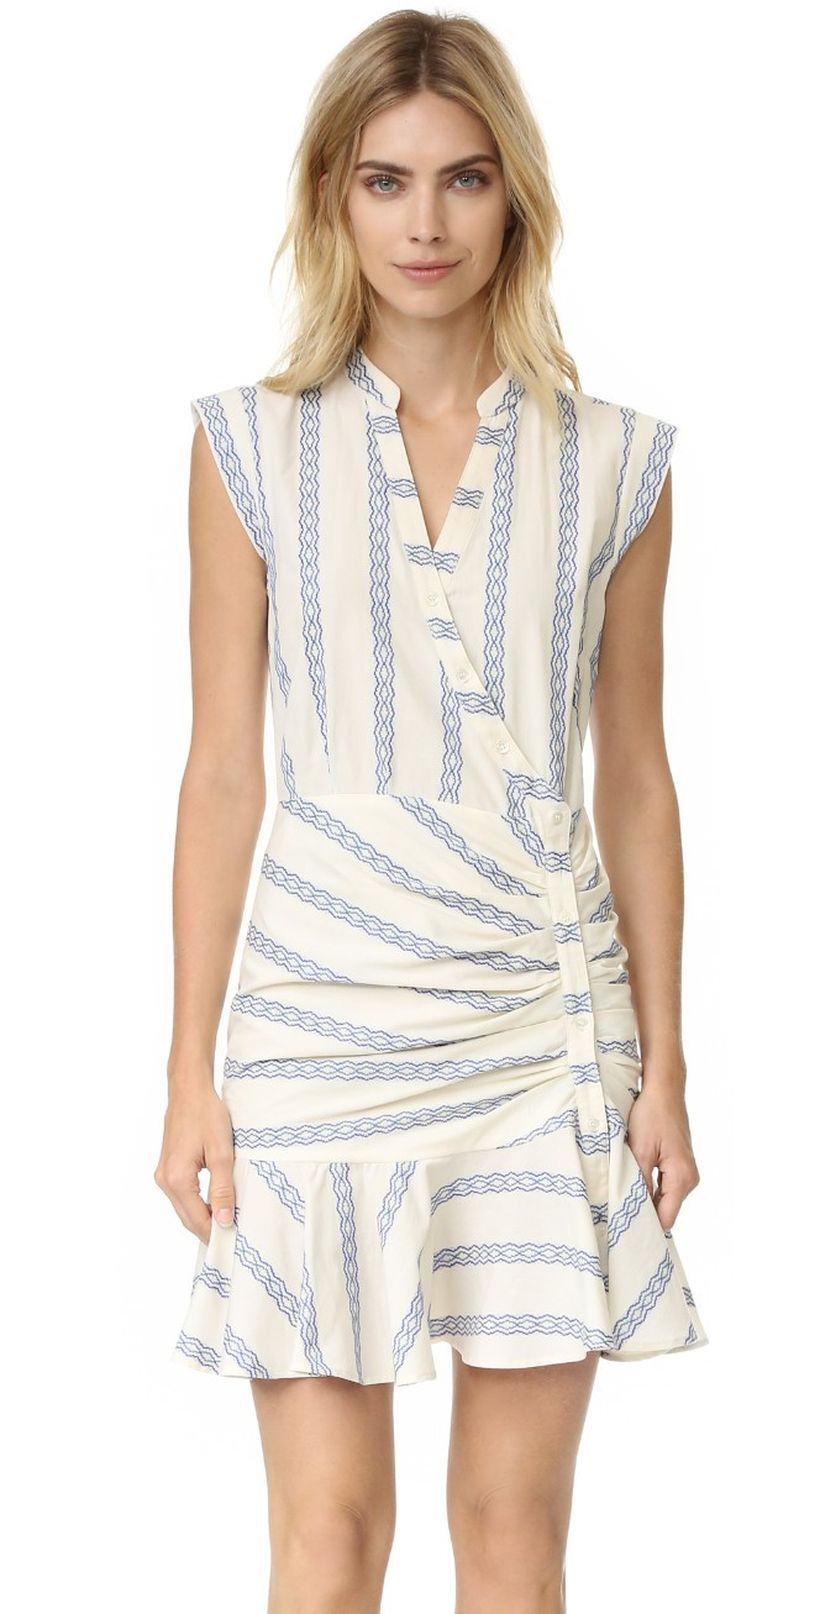 Marvelous striped shirtdresses outfits ideas 26